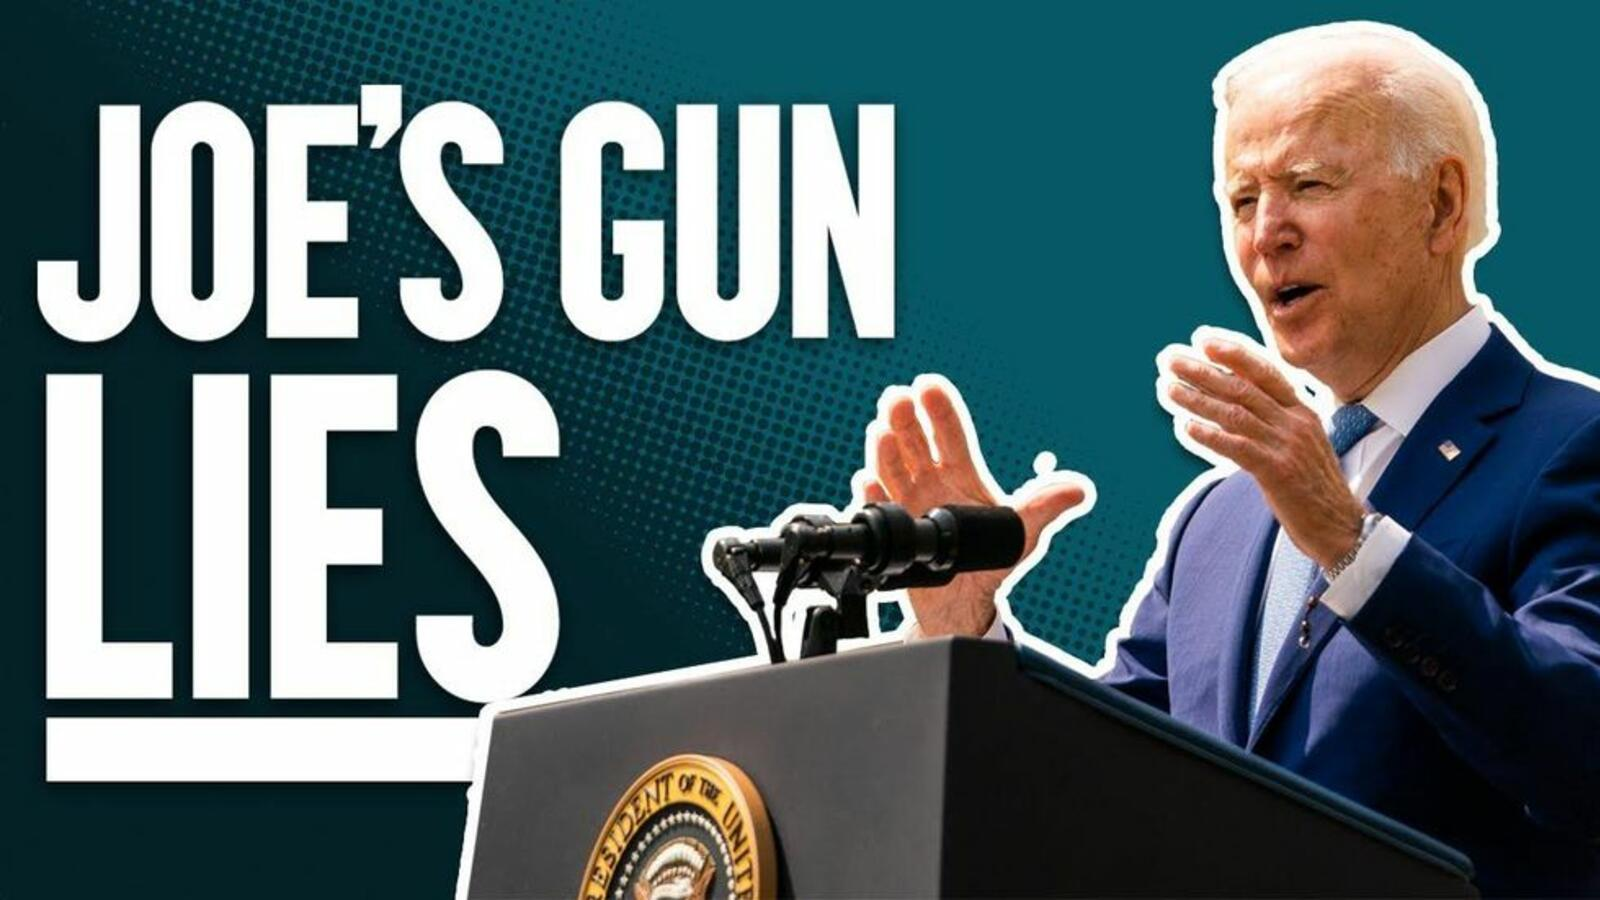 Listen to Joe Biden 'FLAT OUT LYING' during his speech on gun reform